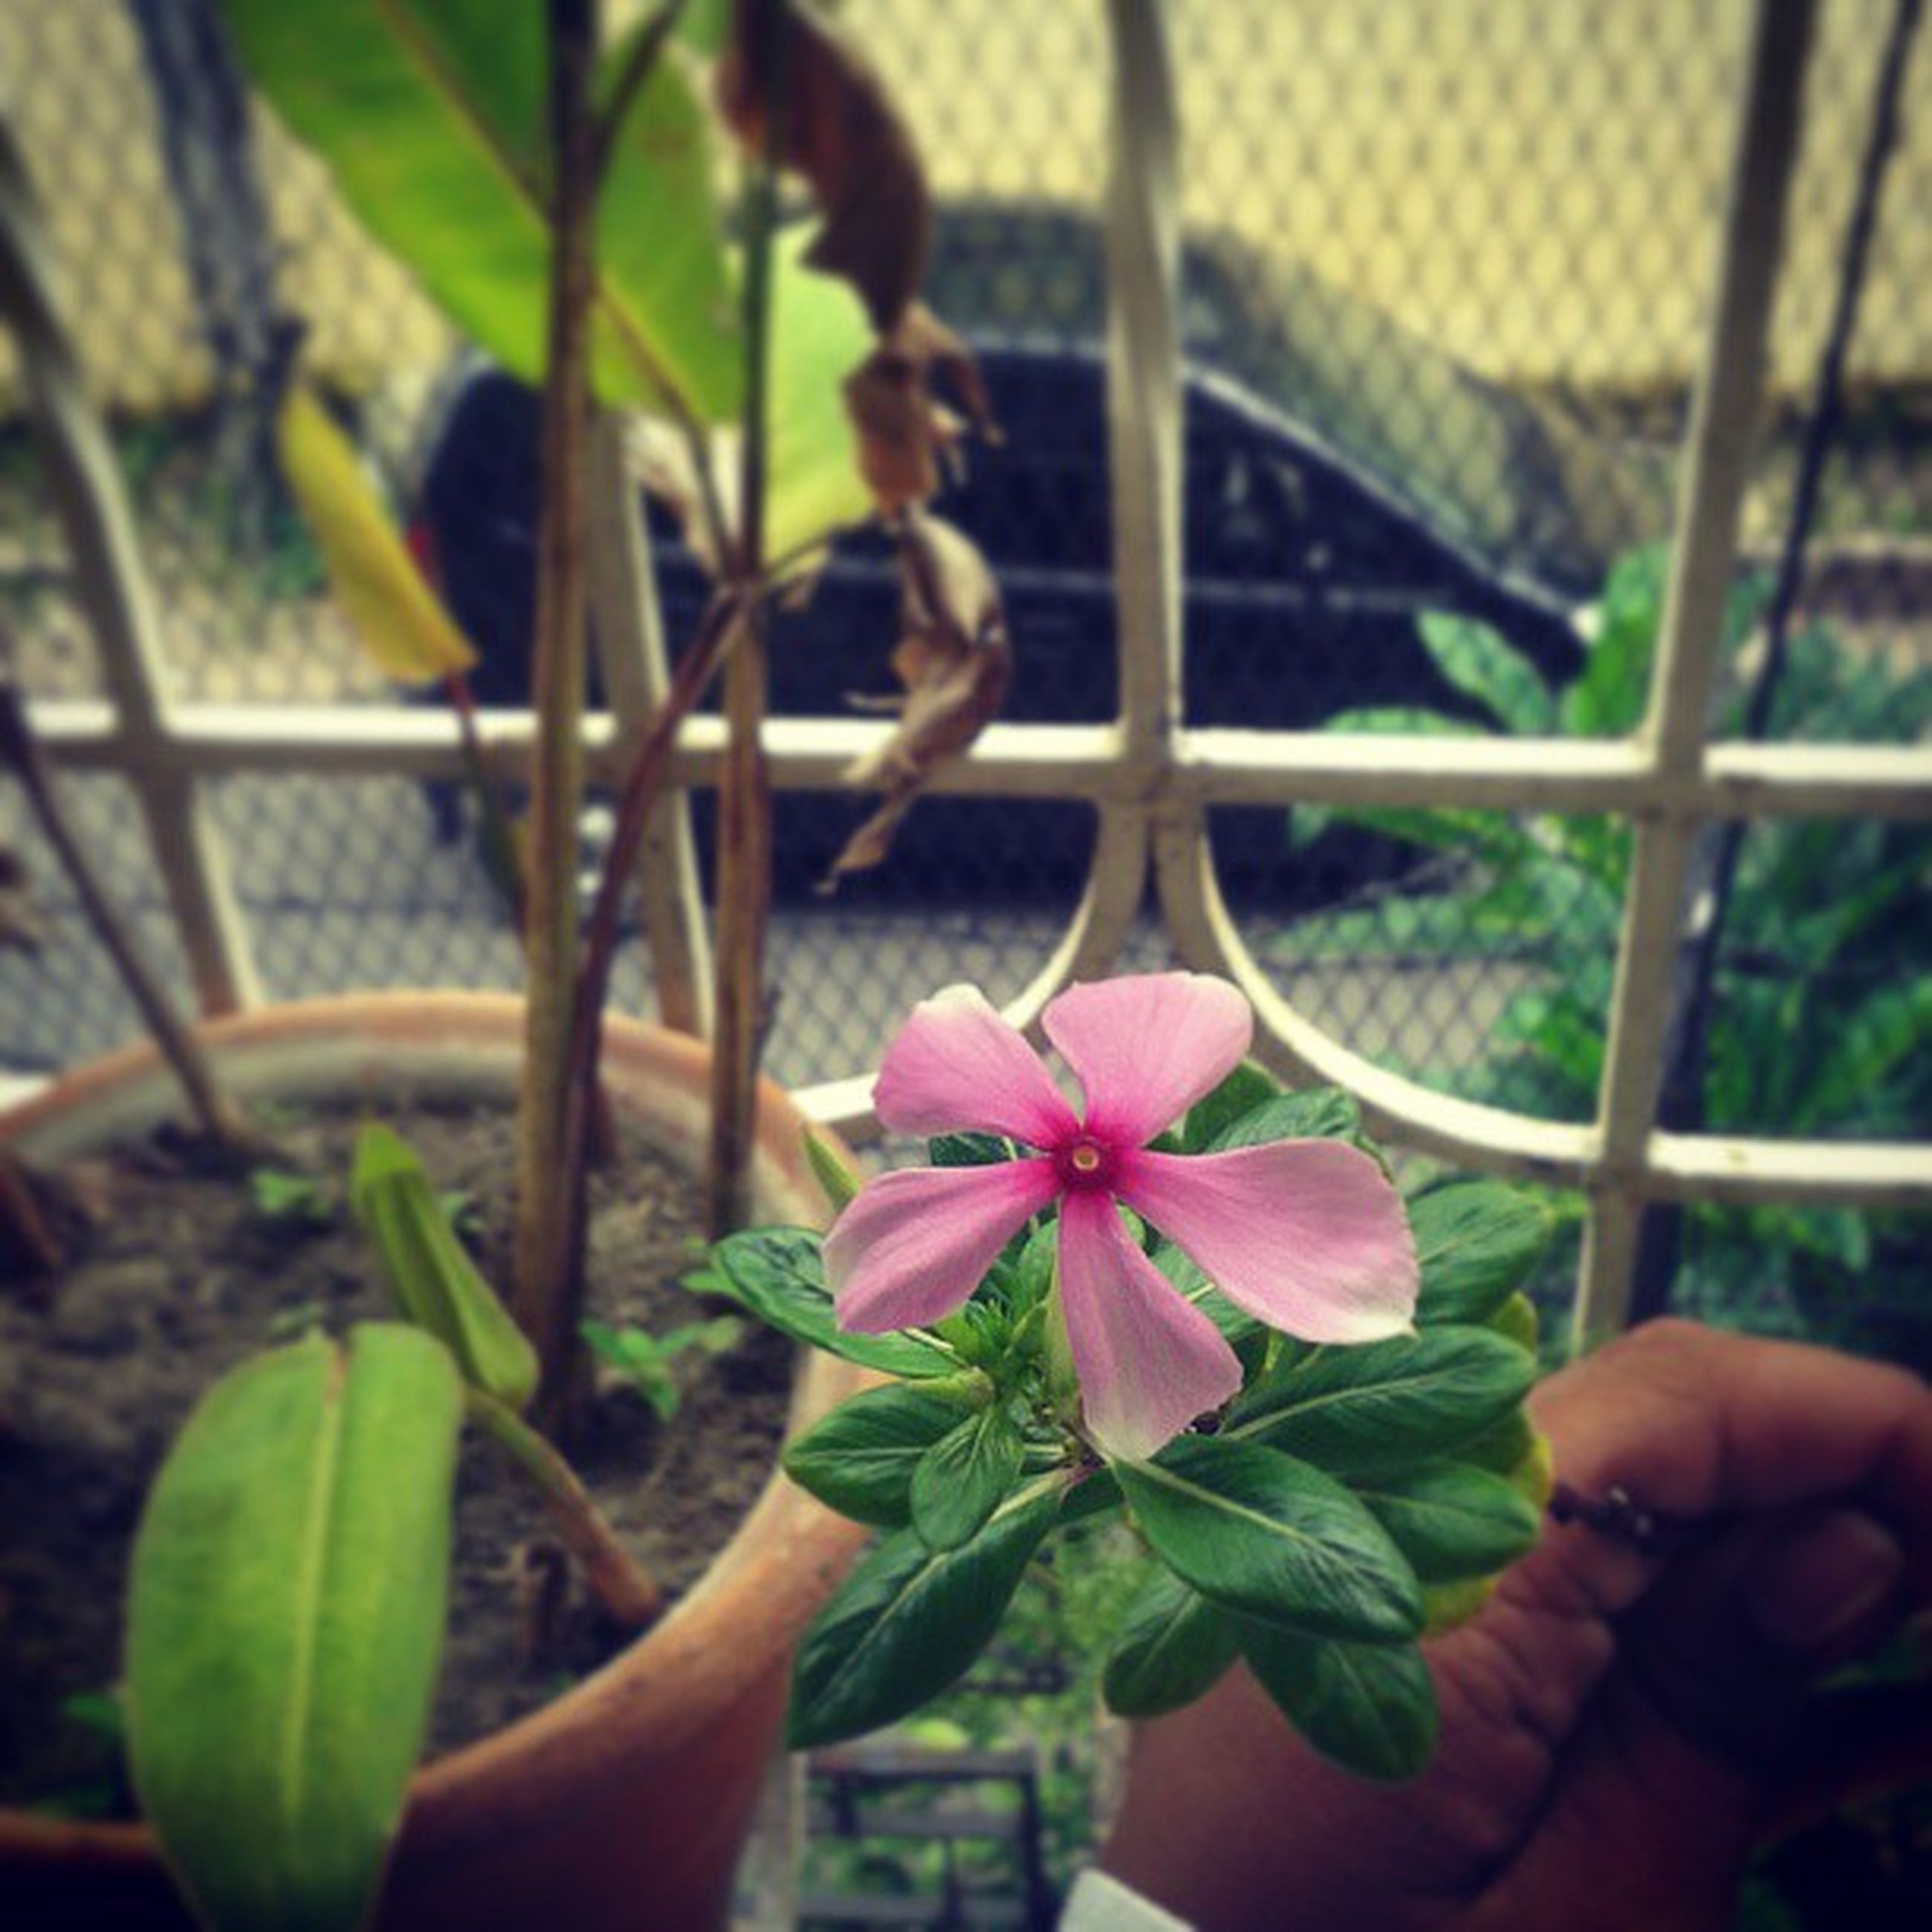 flower, leaf, petal, growth, fragility, plant, freshness, flower head, focus on foreground, beauty in nature, close-up, nature, pink color, potted plant, blooming, single flower, day, outdoors, stem, park - man made space